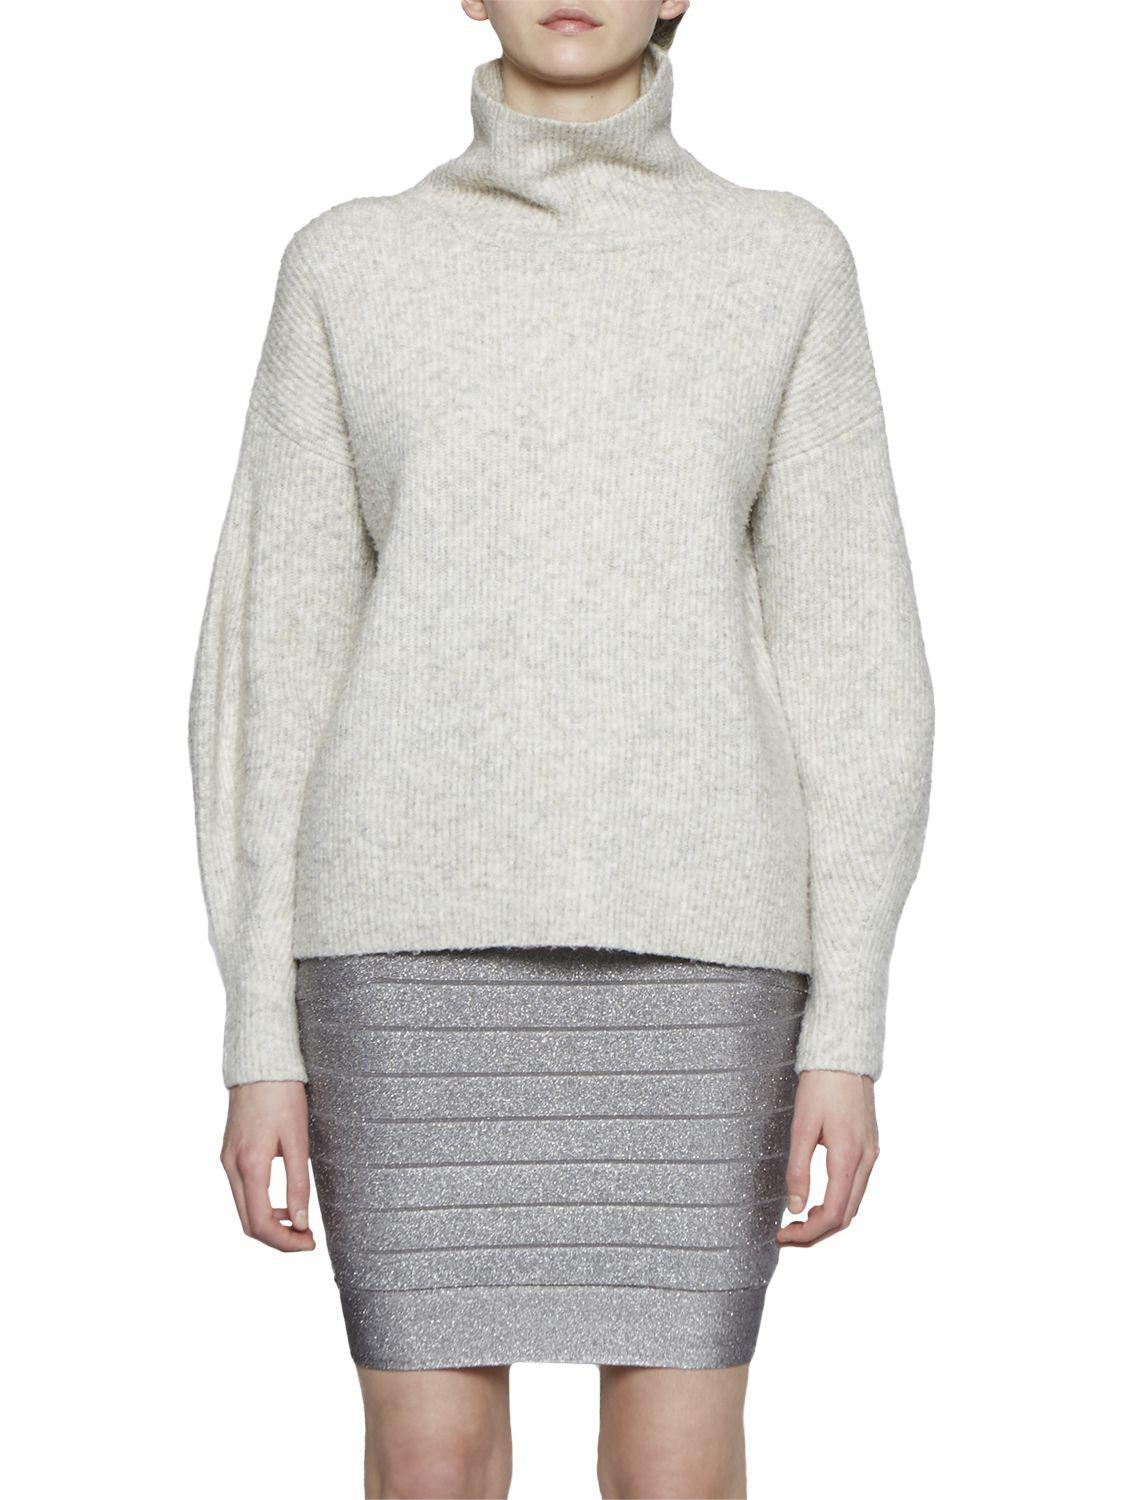 dfcb3566909 French Connection Rosa Knit Pencil Skirt in Metallic - Lyst